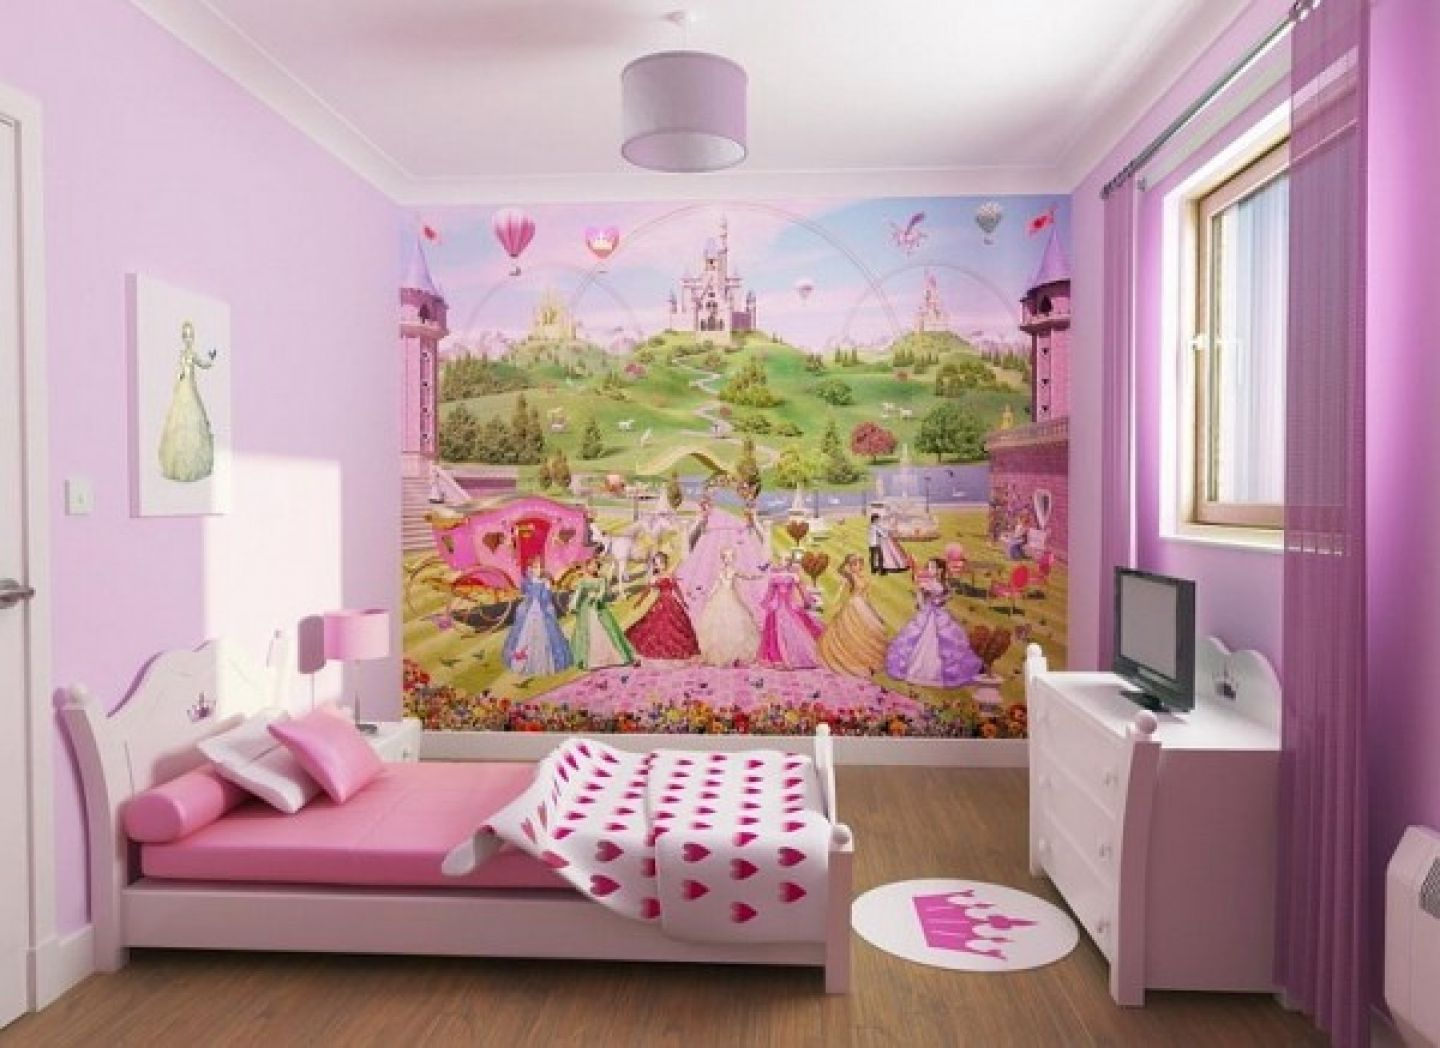 girls bedroom style - Decoration For Girls Bedroom